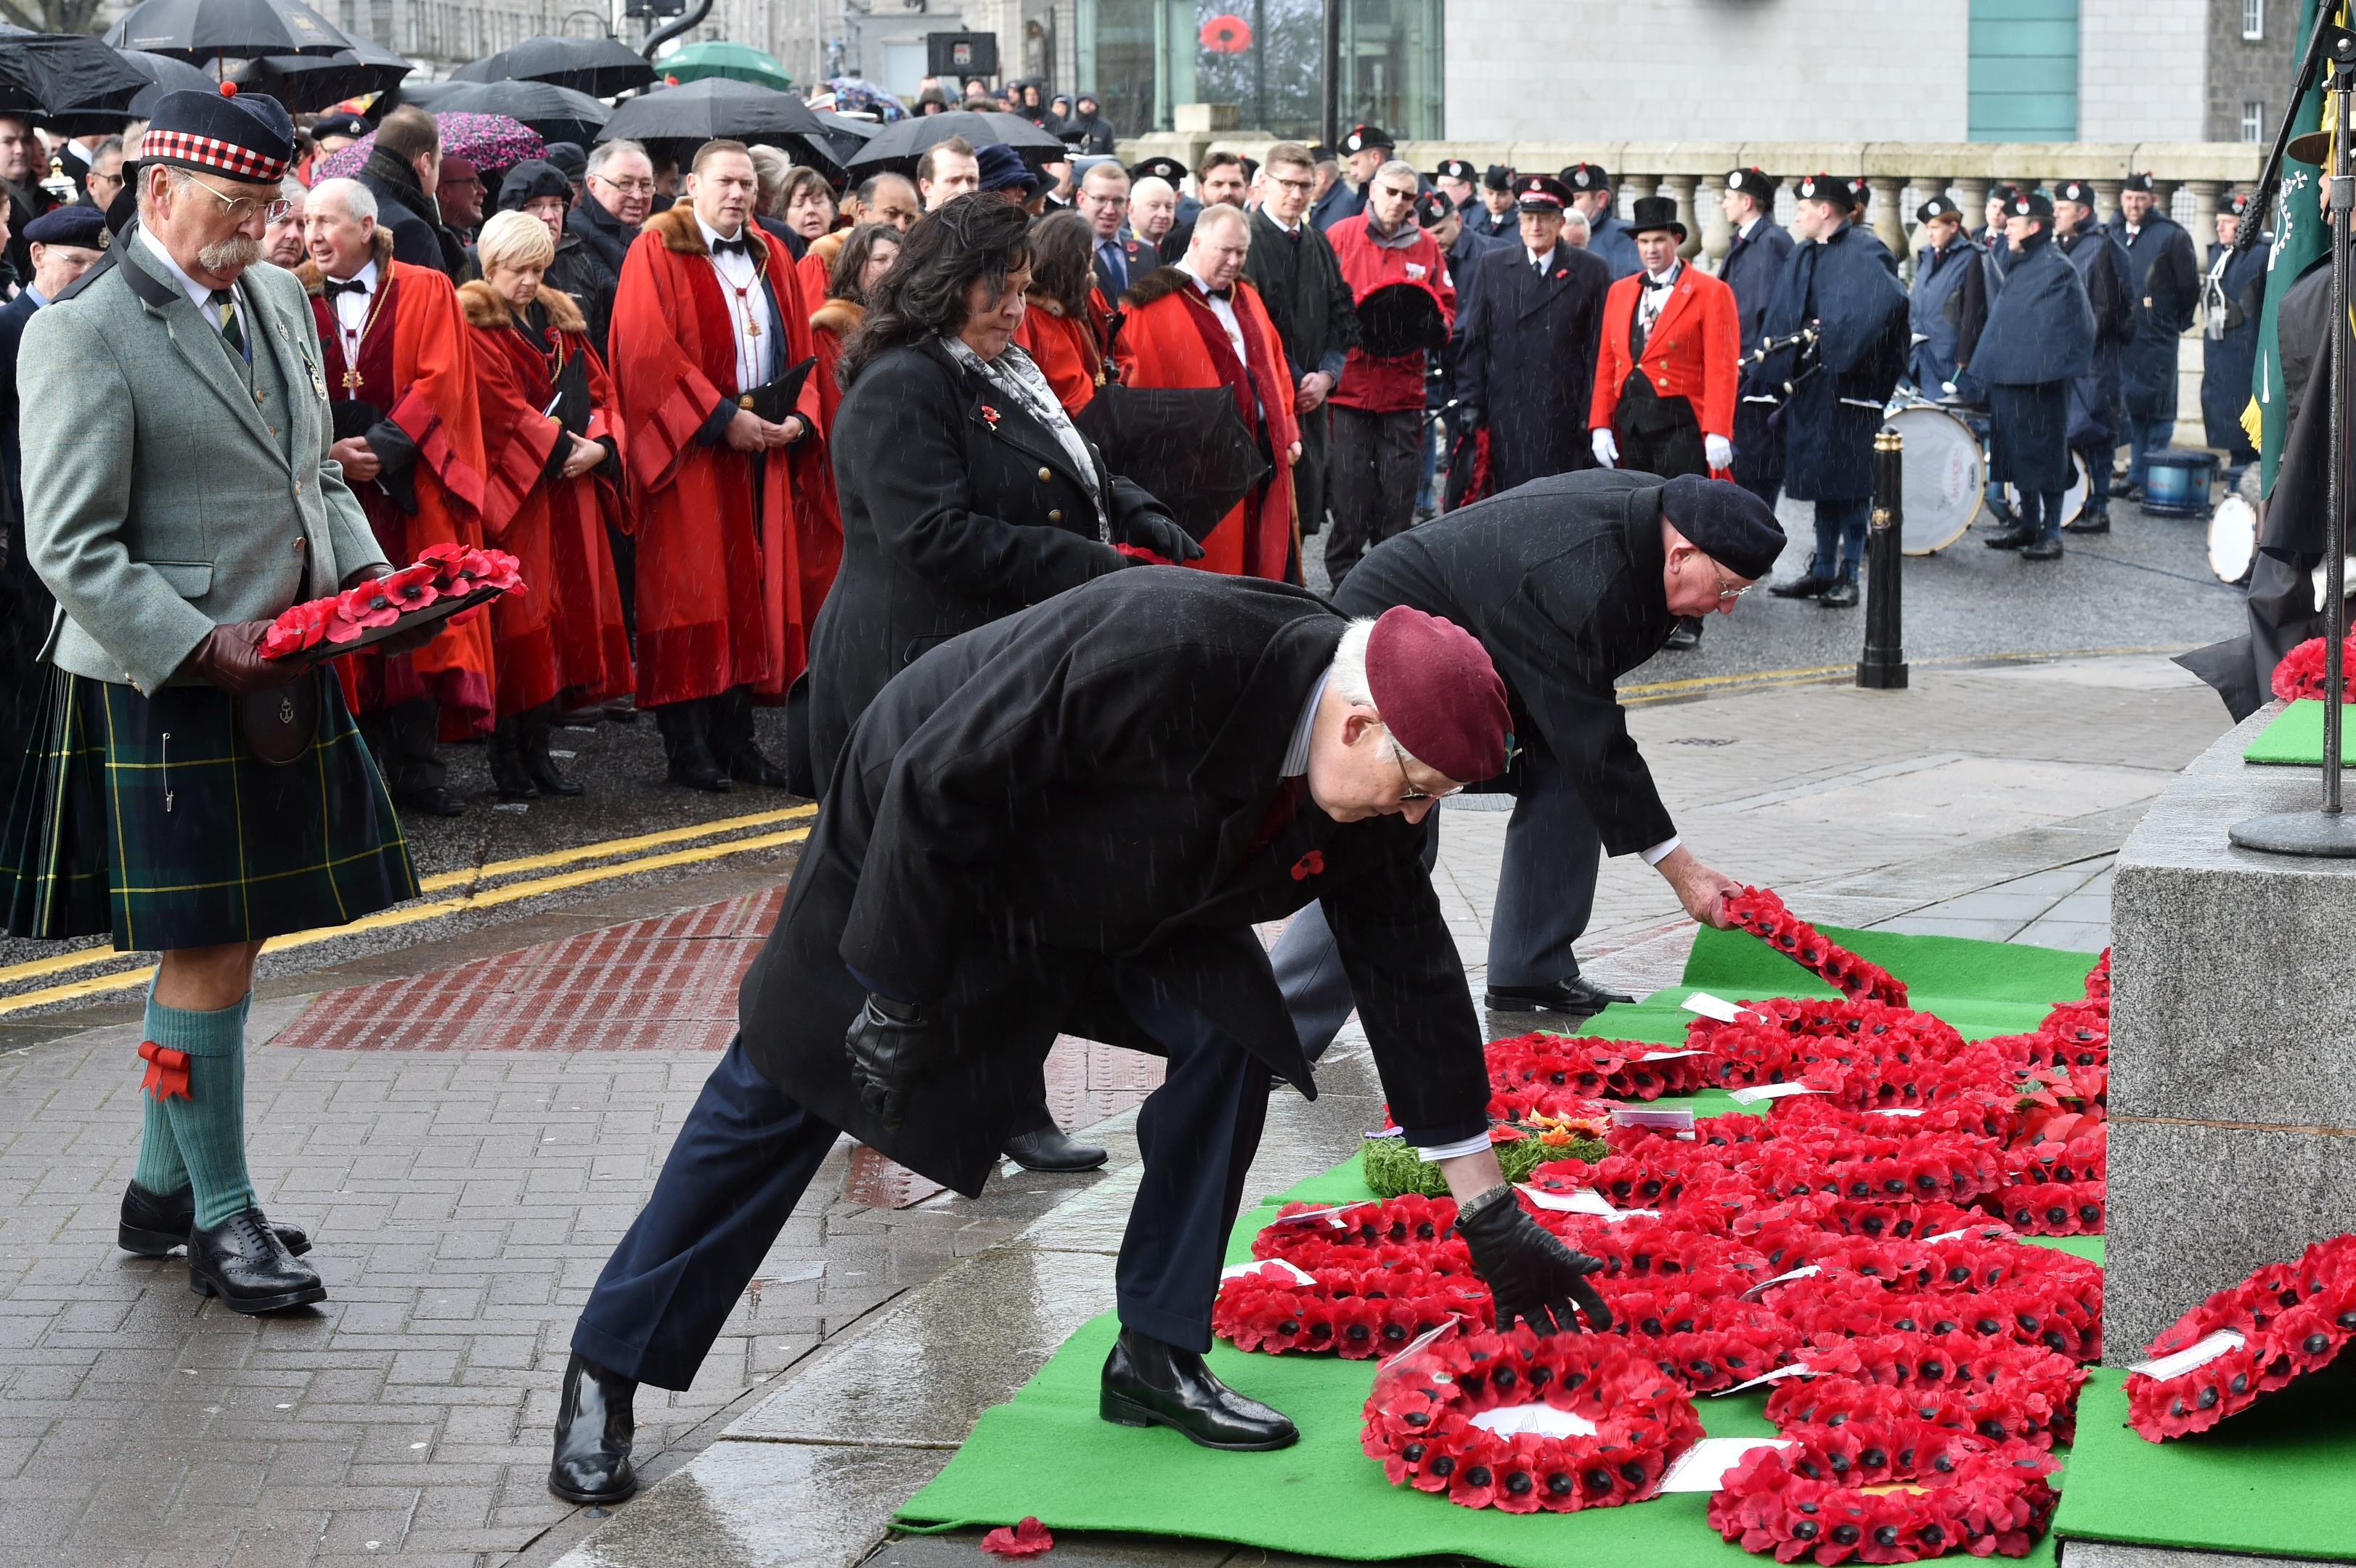 Veterans, Reserves, Cadets and Community Groups attended the service at the War Memorial. Pictures and video by Colin Rennie